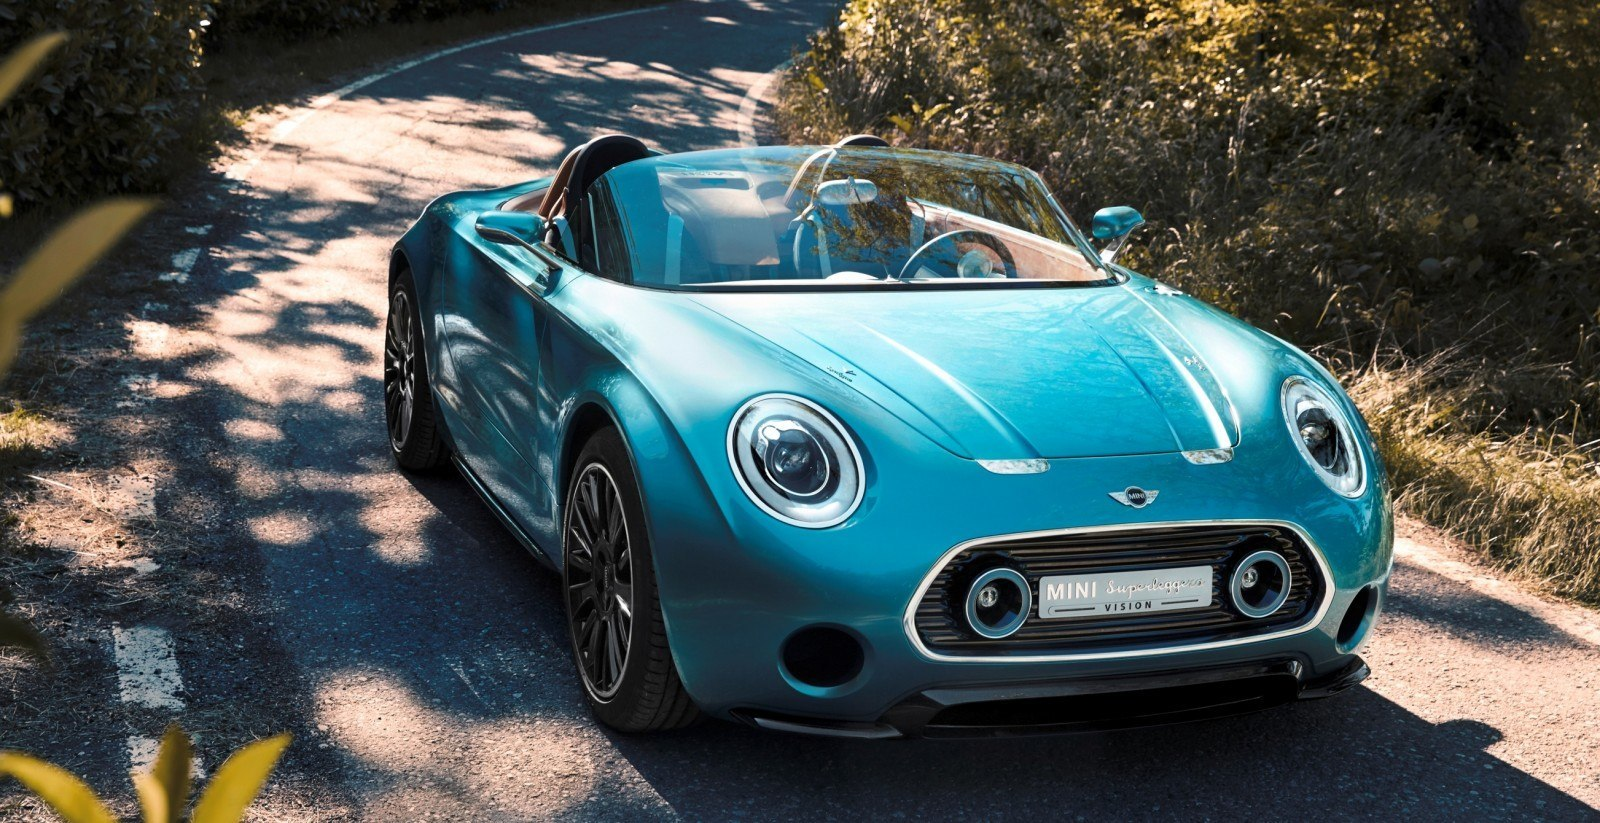 2014 MINI Superleggera Concept is Dreamy Roofless Speedster27